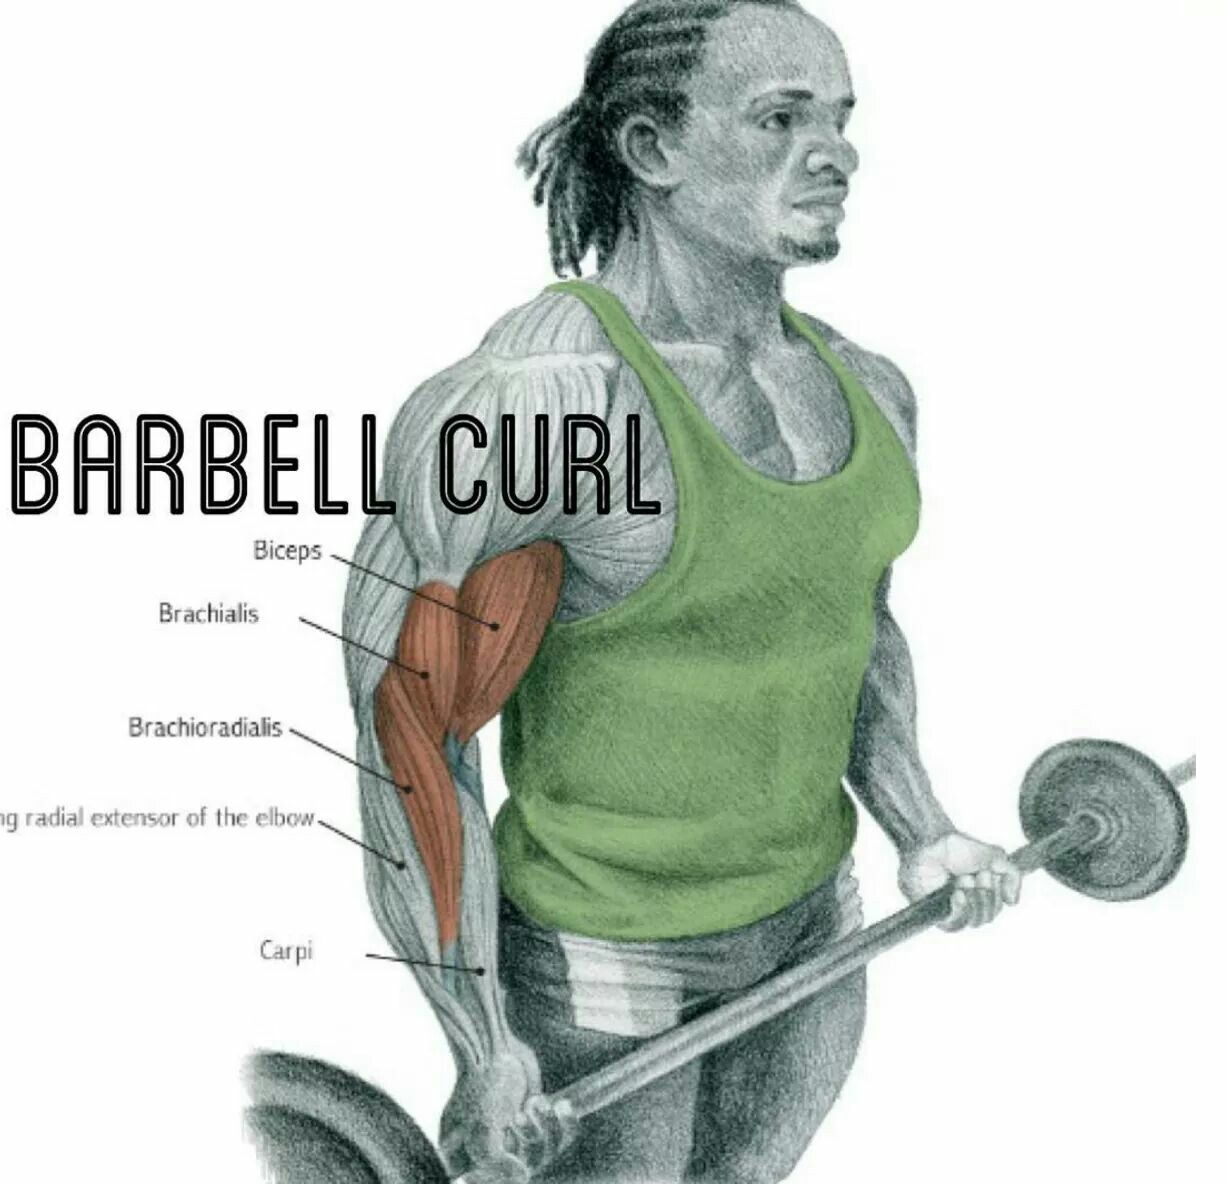 Pin by Janelle Asher on BEAST MODE Barbell curl, Biceps